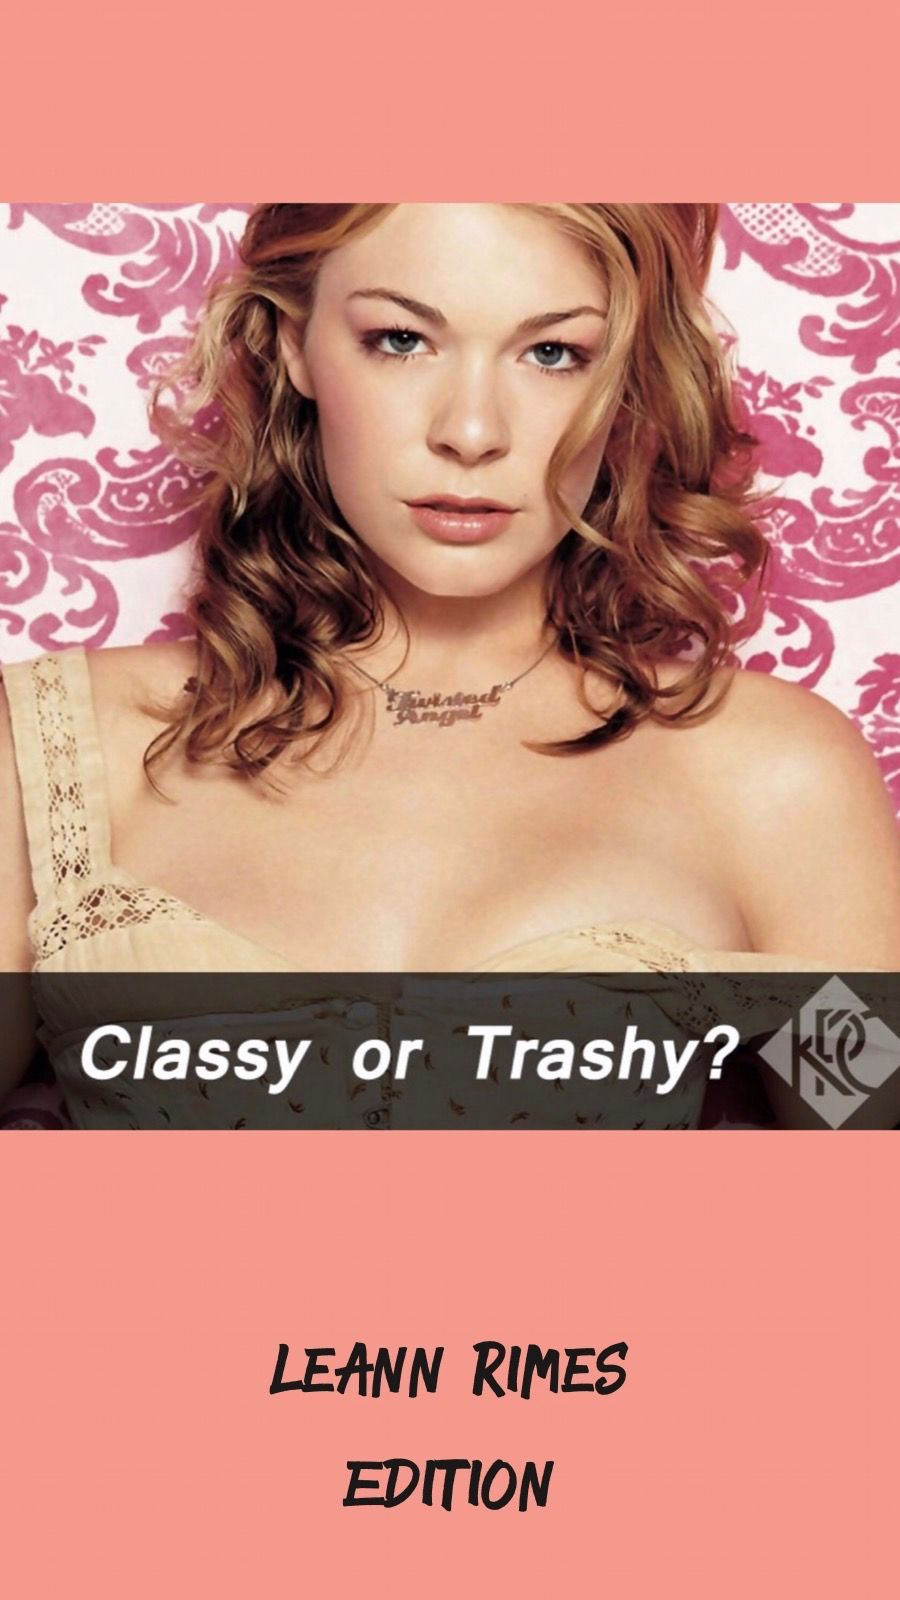 Is former country music star LeAnnRimes CLASSY or TRASHY?